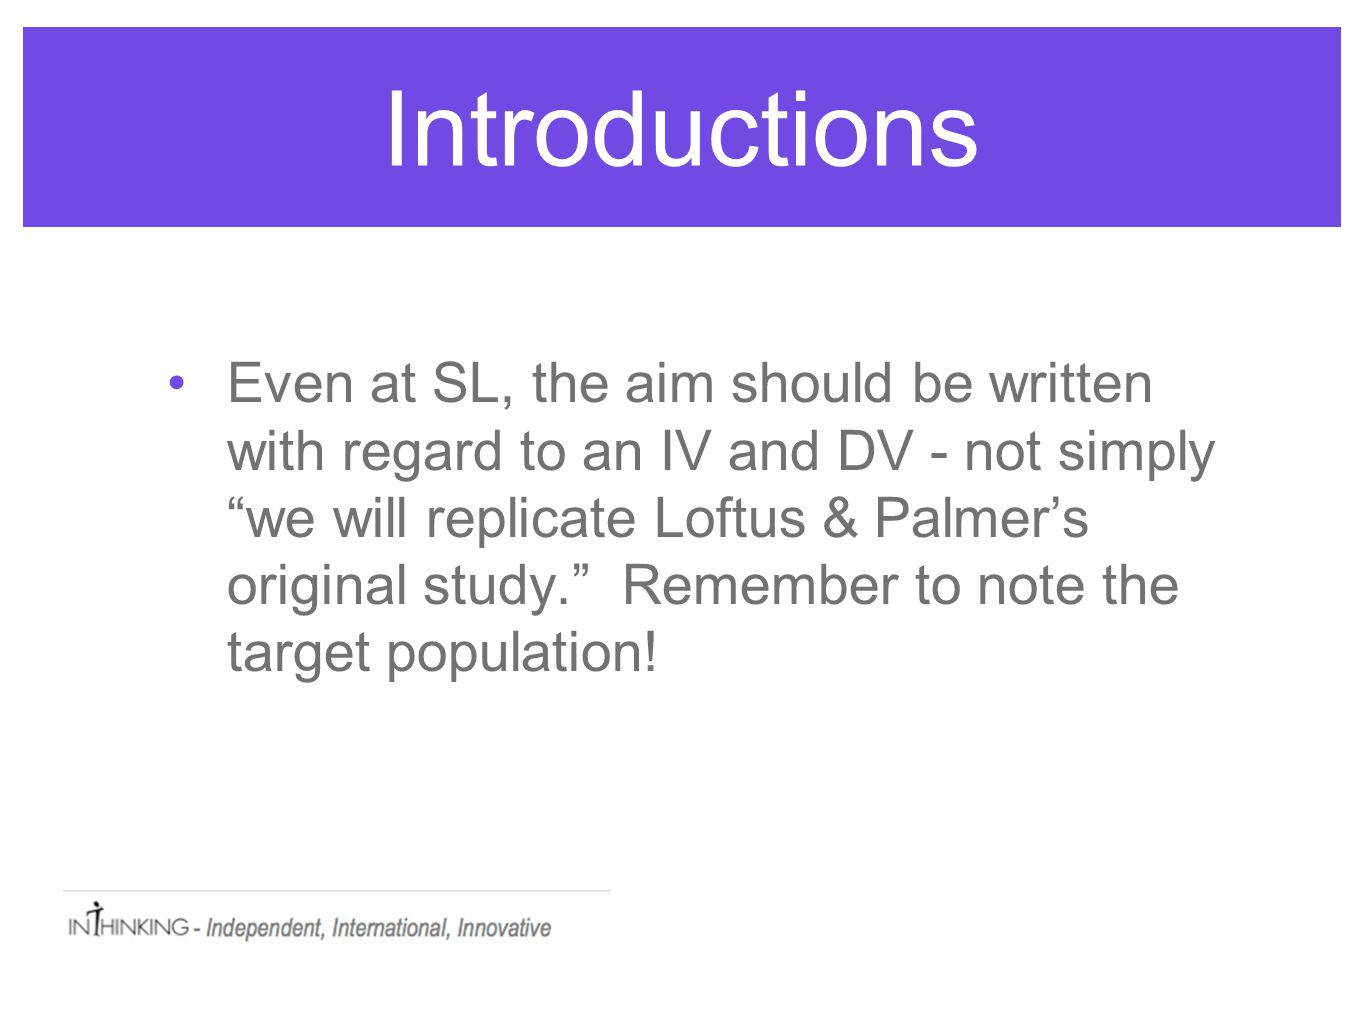 Introductions Even at SL, the aim should be written with regard to an IV and DV - not simply we will replicate Loftus & Palmer's original study. Remember to note the target population!